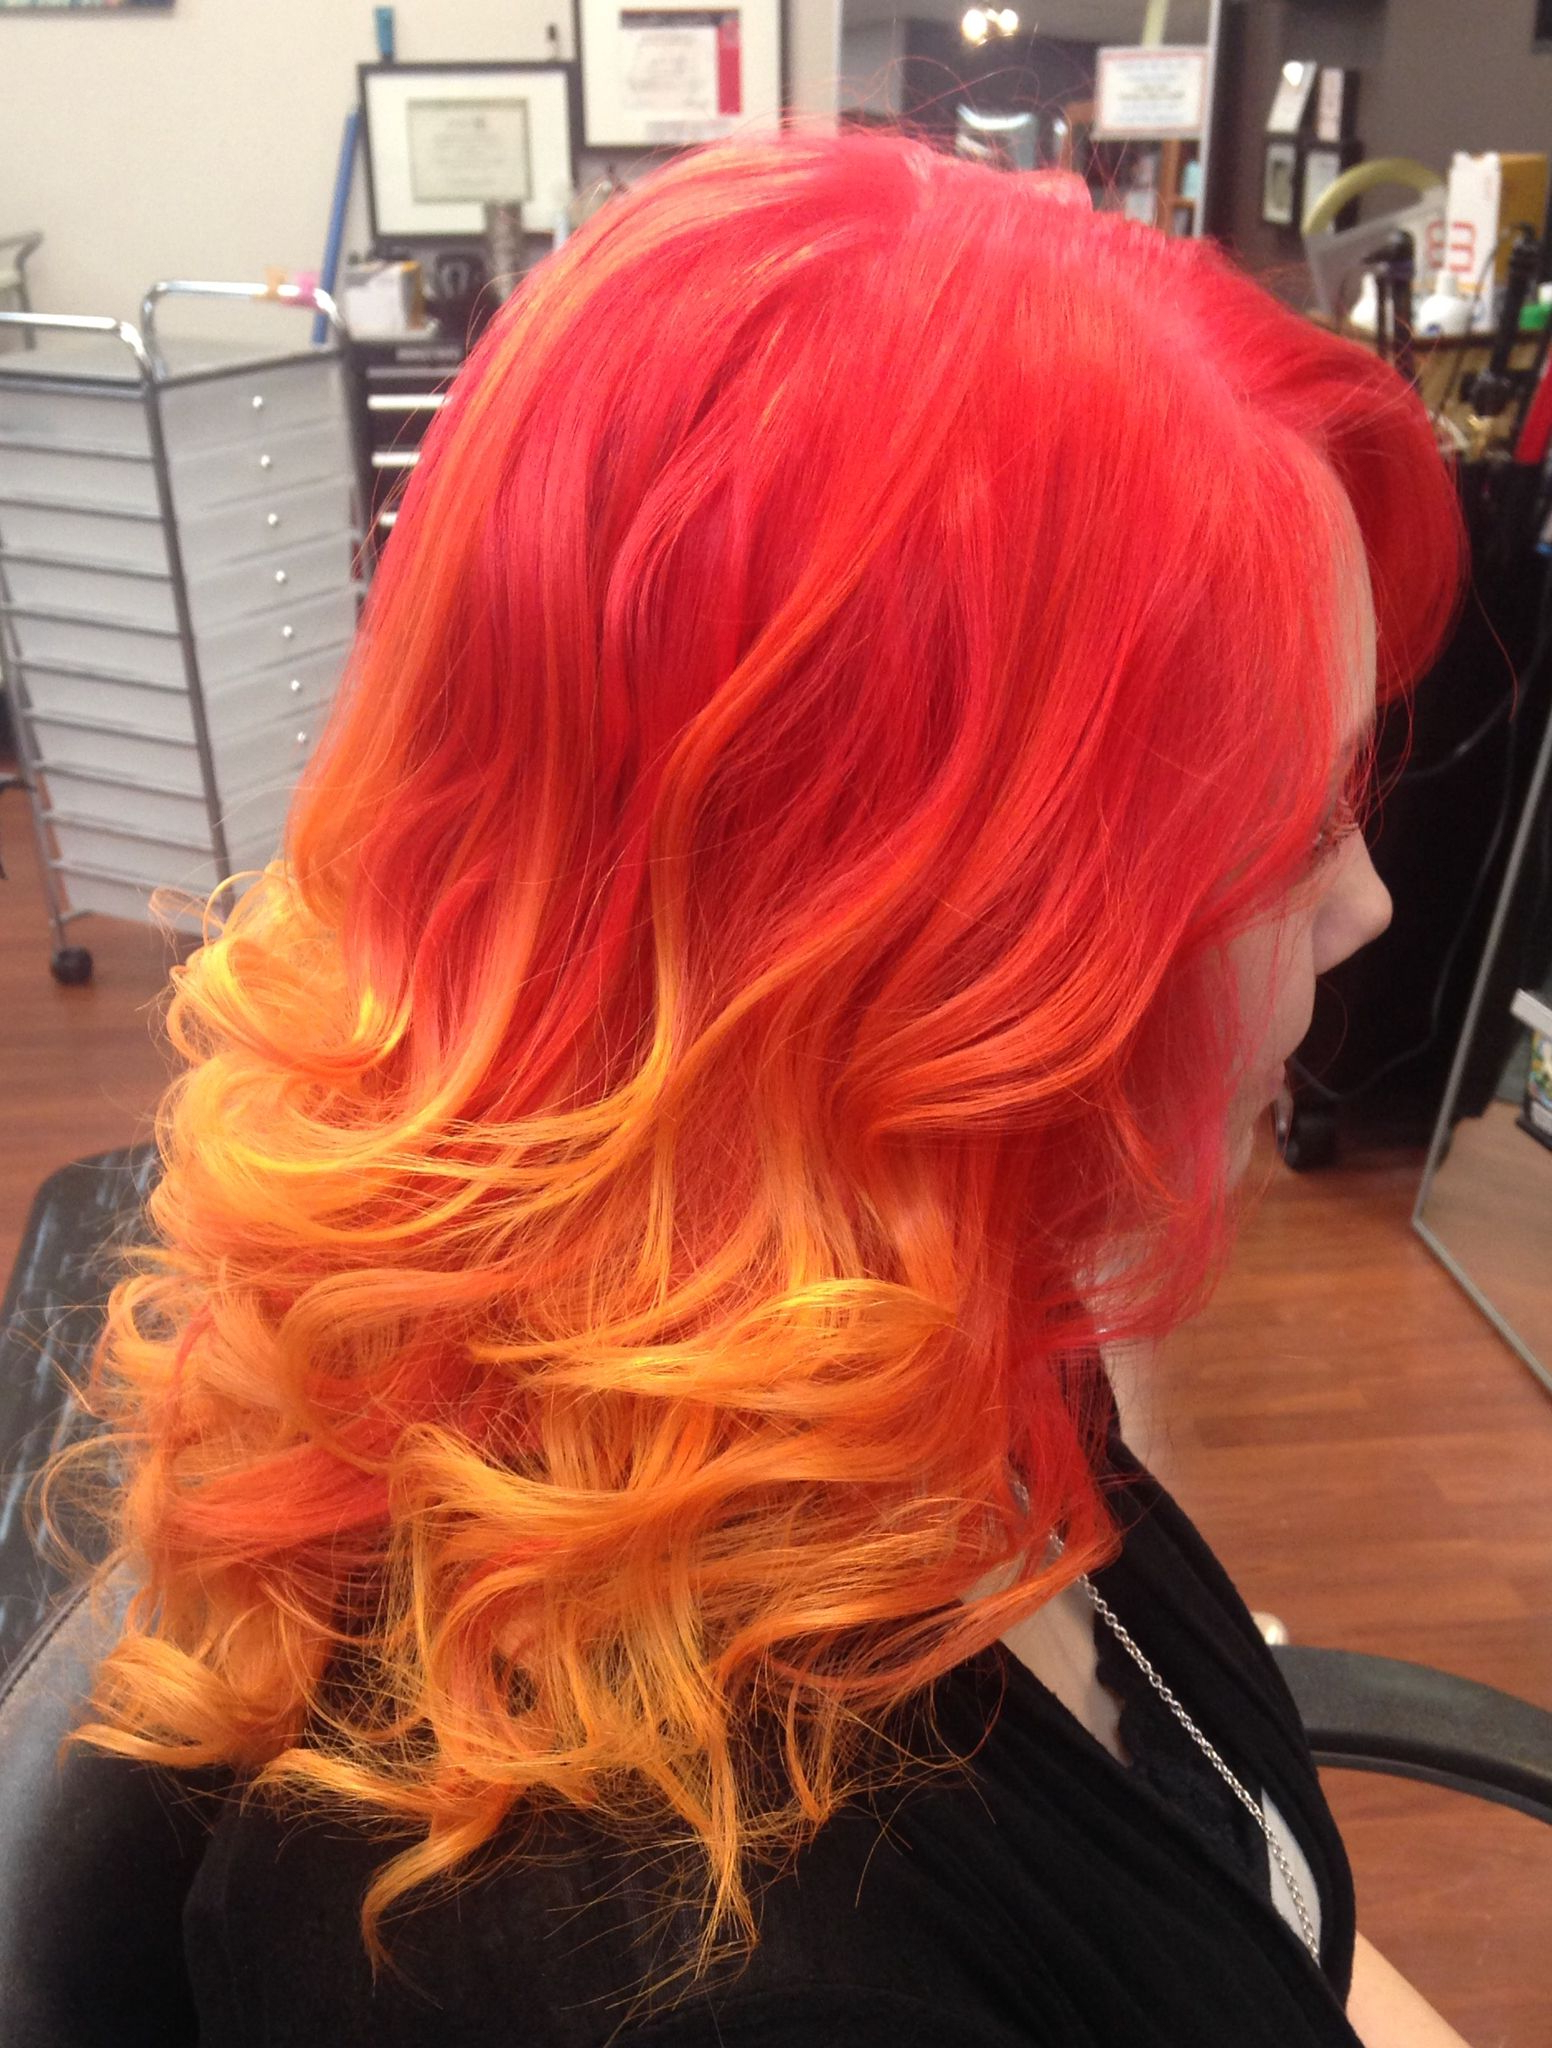 Red, Orange, And Yellow Fire Ombrécassie Ways At Alter Intended For Recent Red, Orange And Yellow Half Updo Hairstyles (View 6 of 20)